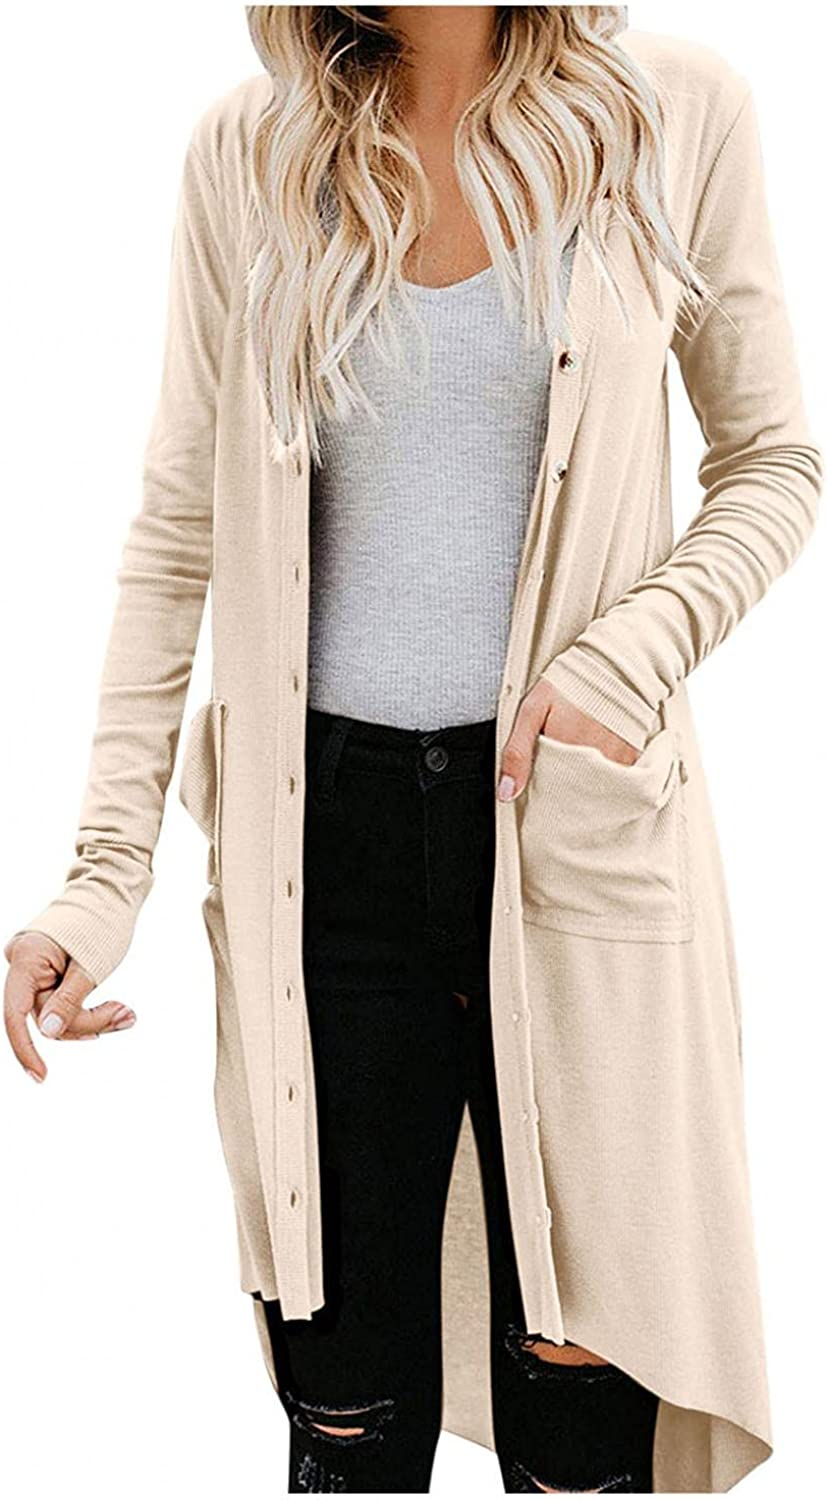 Gibobby Sweaters for Women,Womens Fashion Loose Lightweight Plus Size Open Front Long Sleeve Pocket Outwear with Button